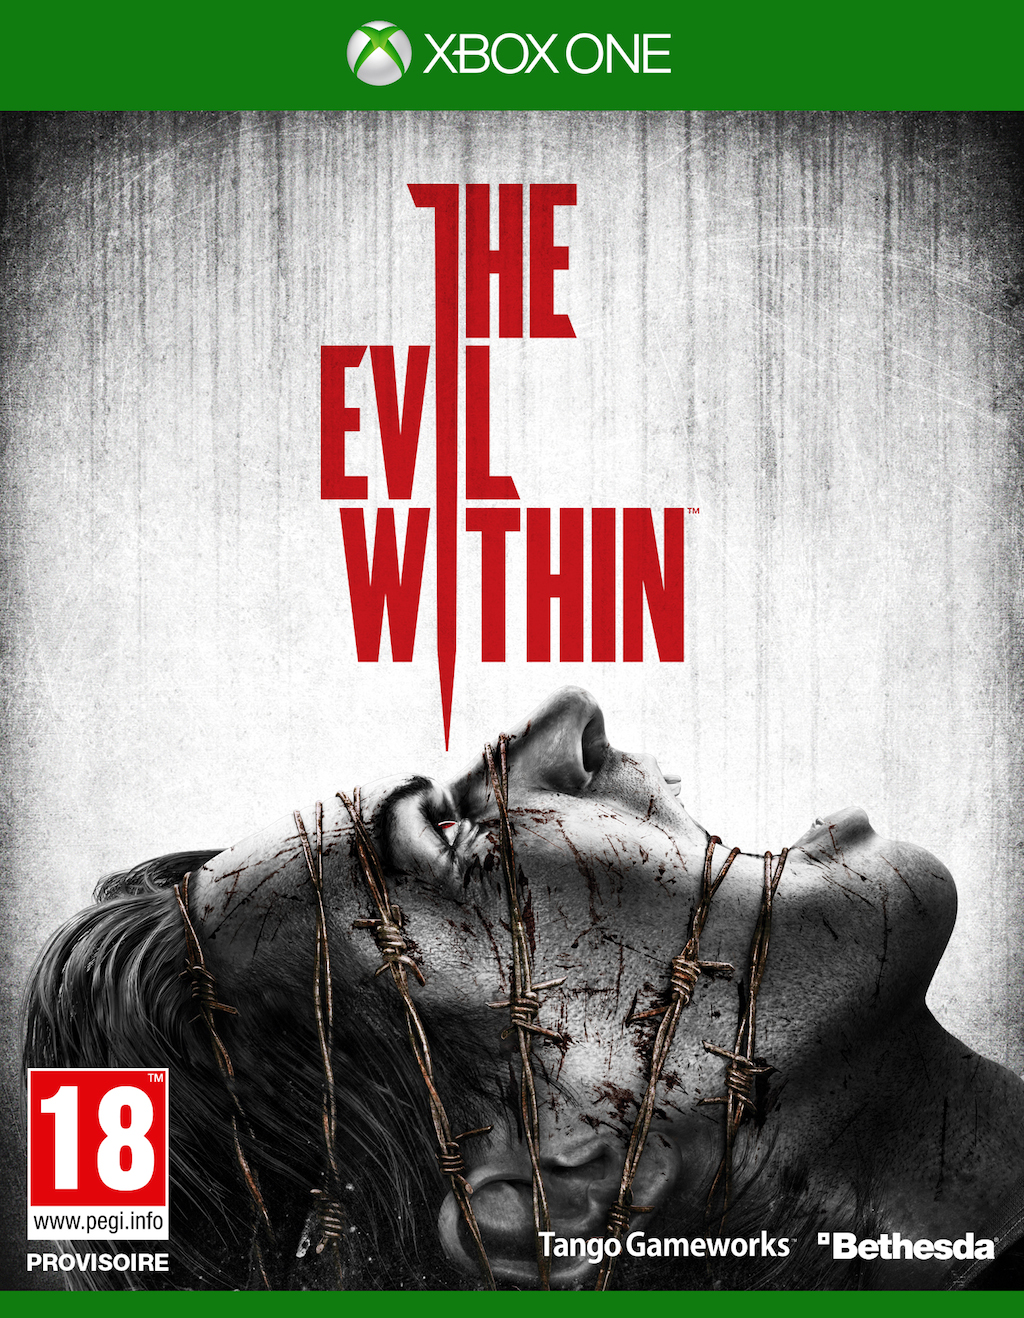 TheEvilWithin Xbox One Jaquette 001